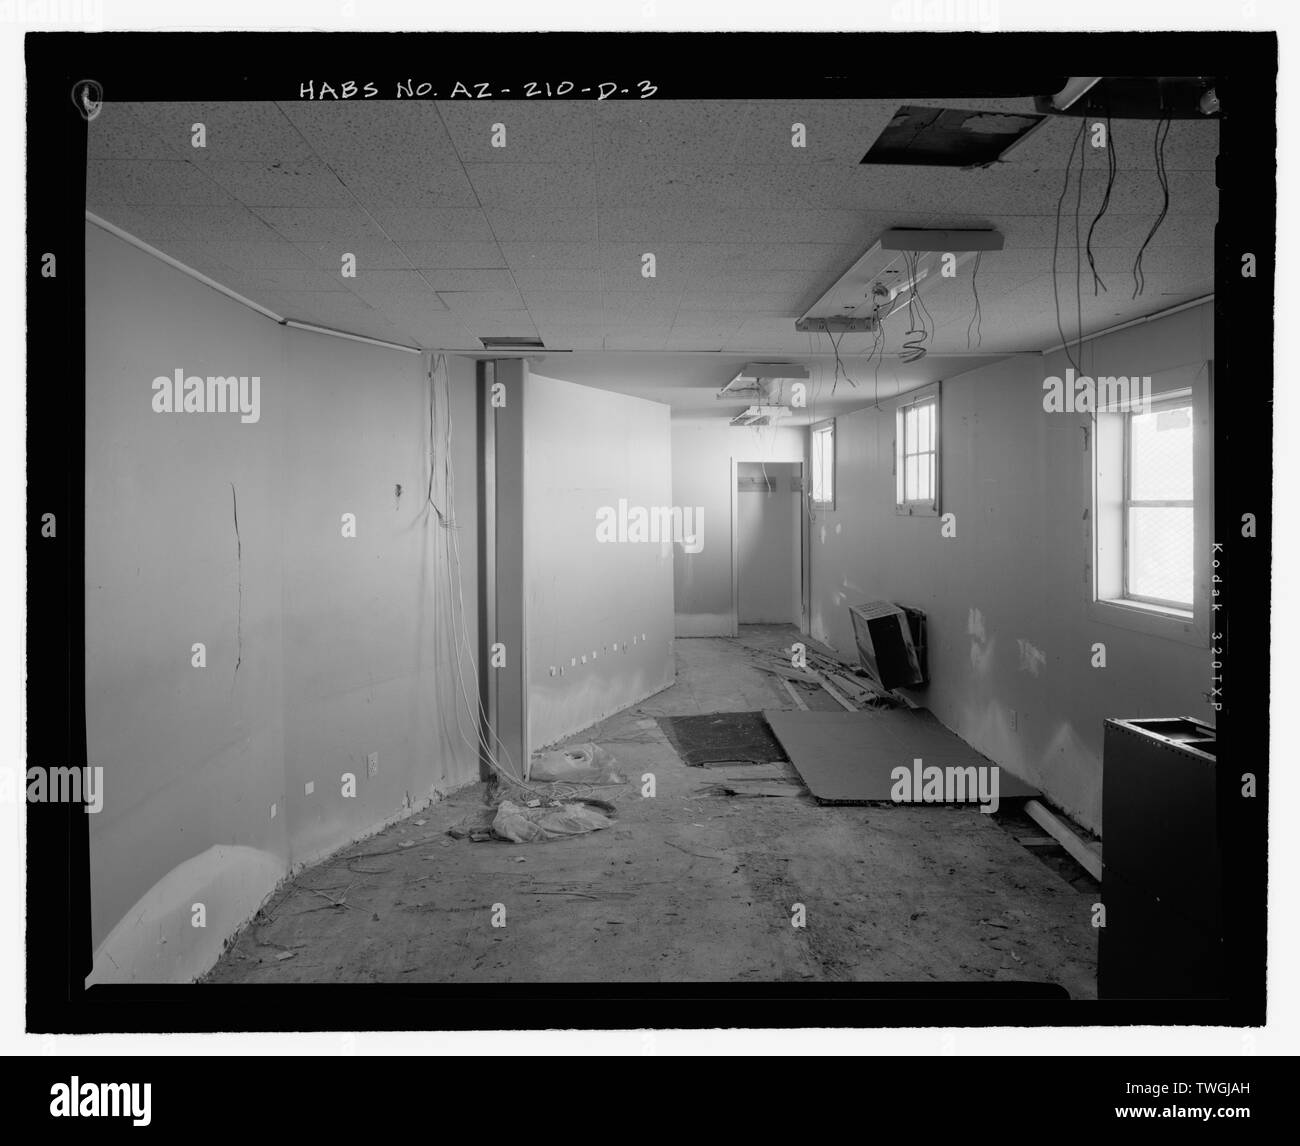 REMODELED OFFICE ROOM FROM EAST SHOWING DIAGONAL PARTITION WITH ADDED GYPSUM BOARD - Fort Huachuca, Cavalry Stable, Clarkson Road, Sierra Vista, Cochise County, AZ - Stock Image